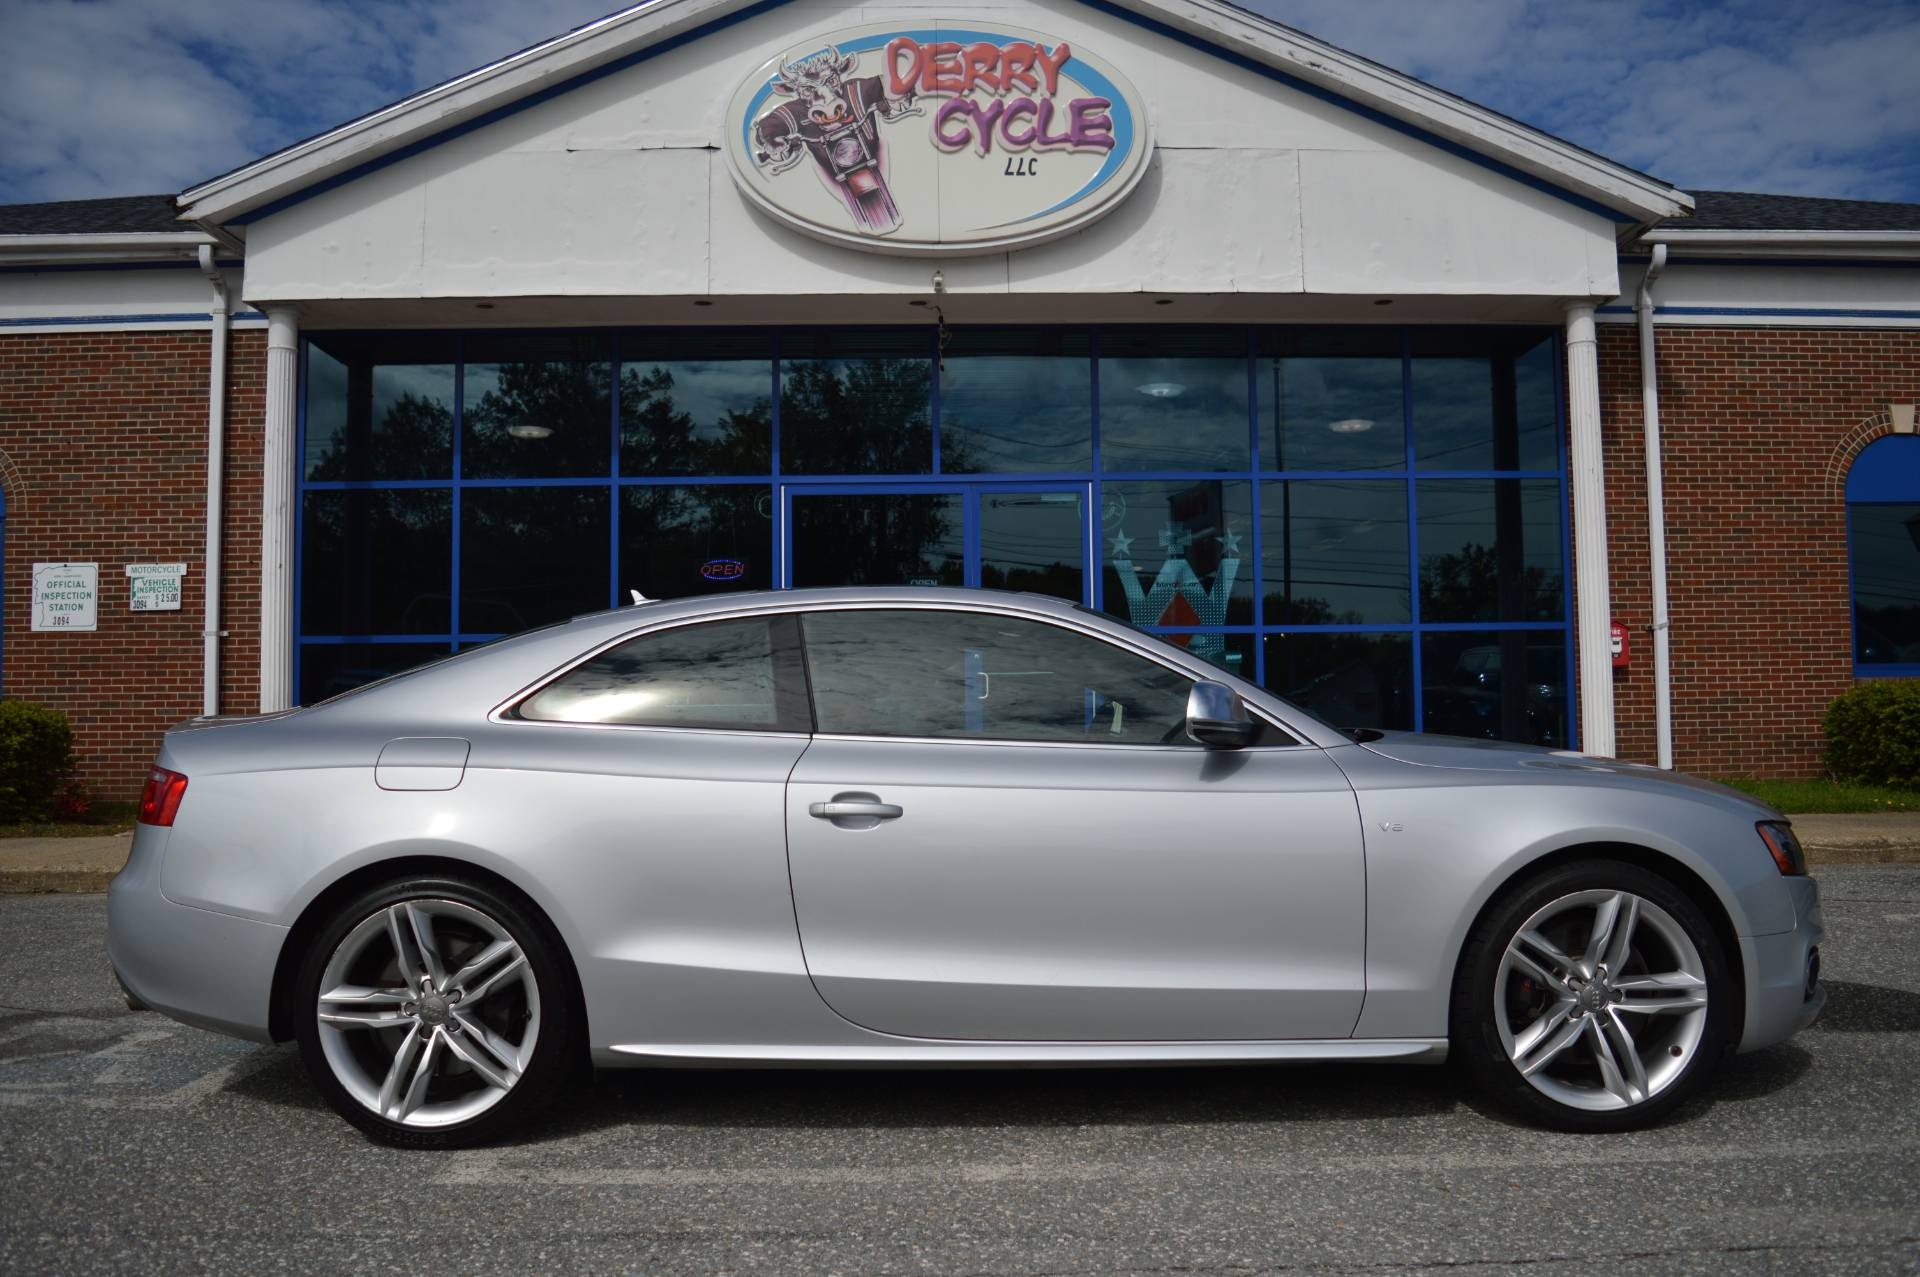 2008 Other AUDI S5 in Derry, New Hampshire